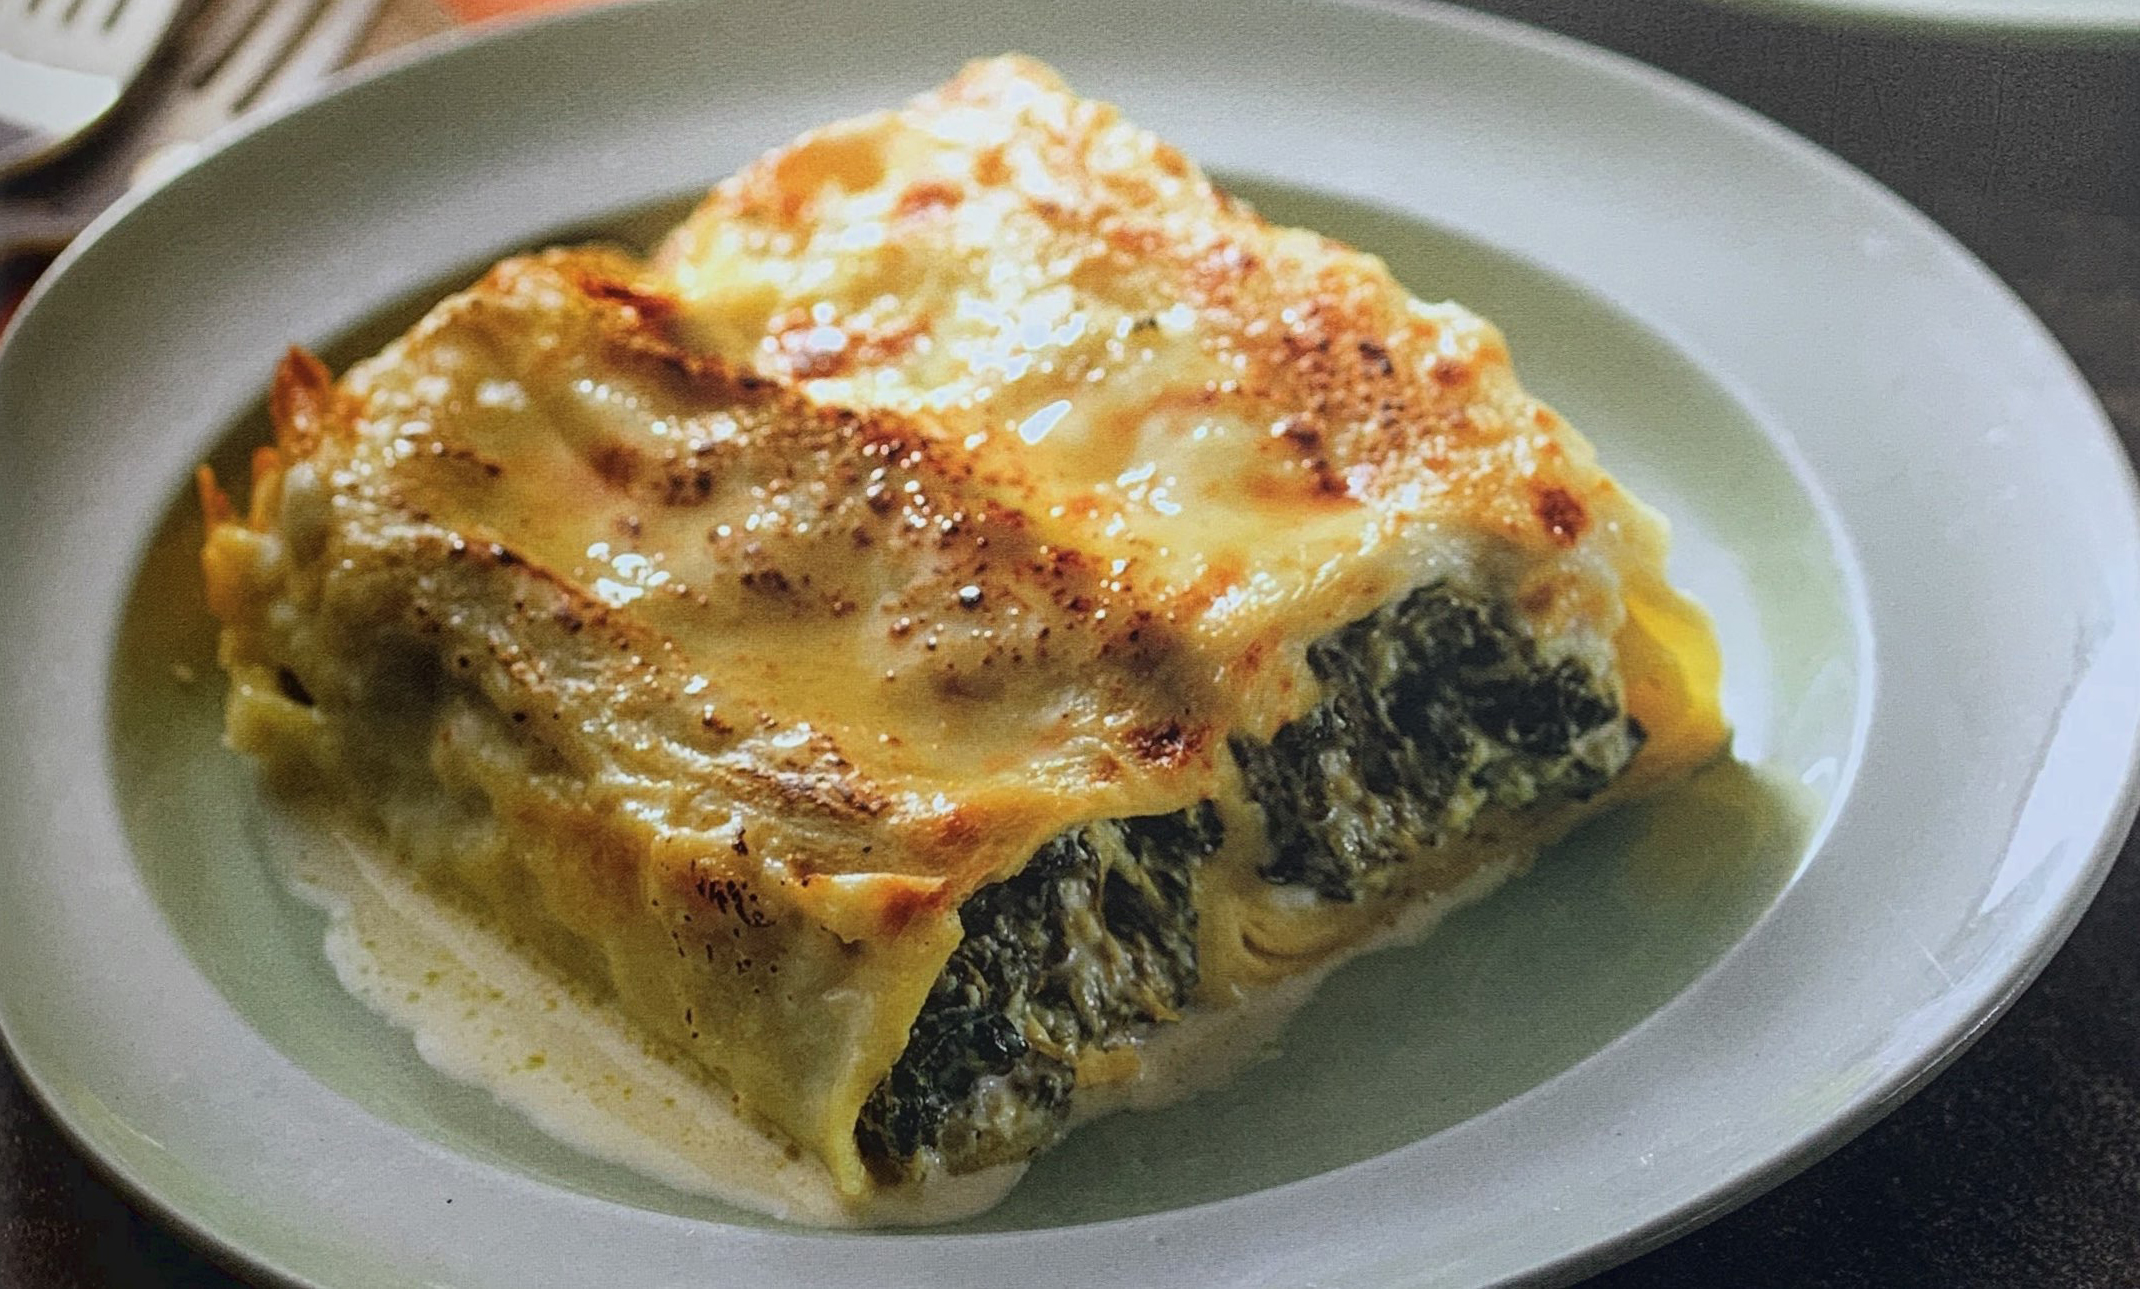 Thermomix cannelloni met spinazie en ricotta